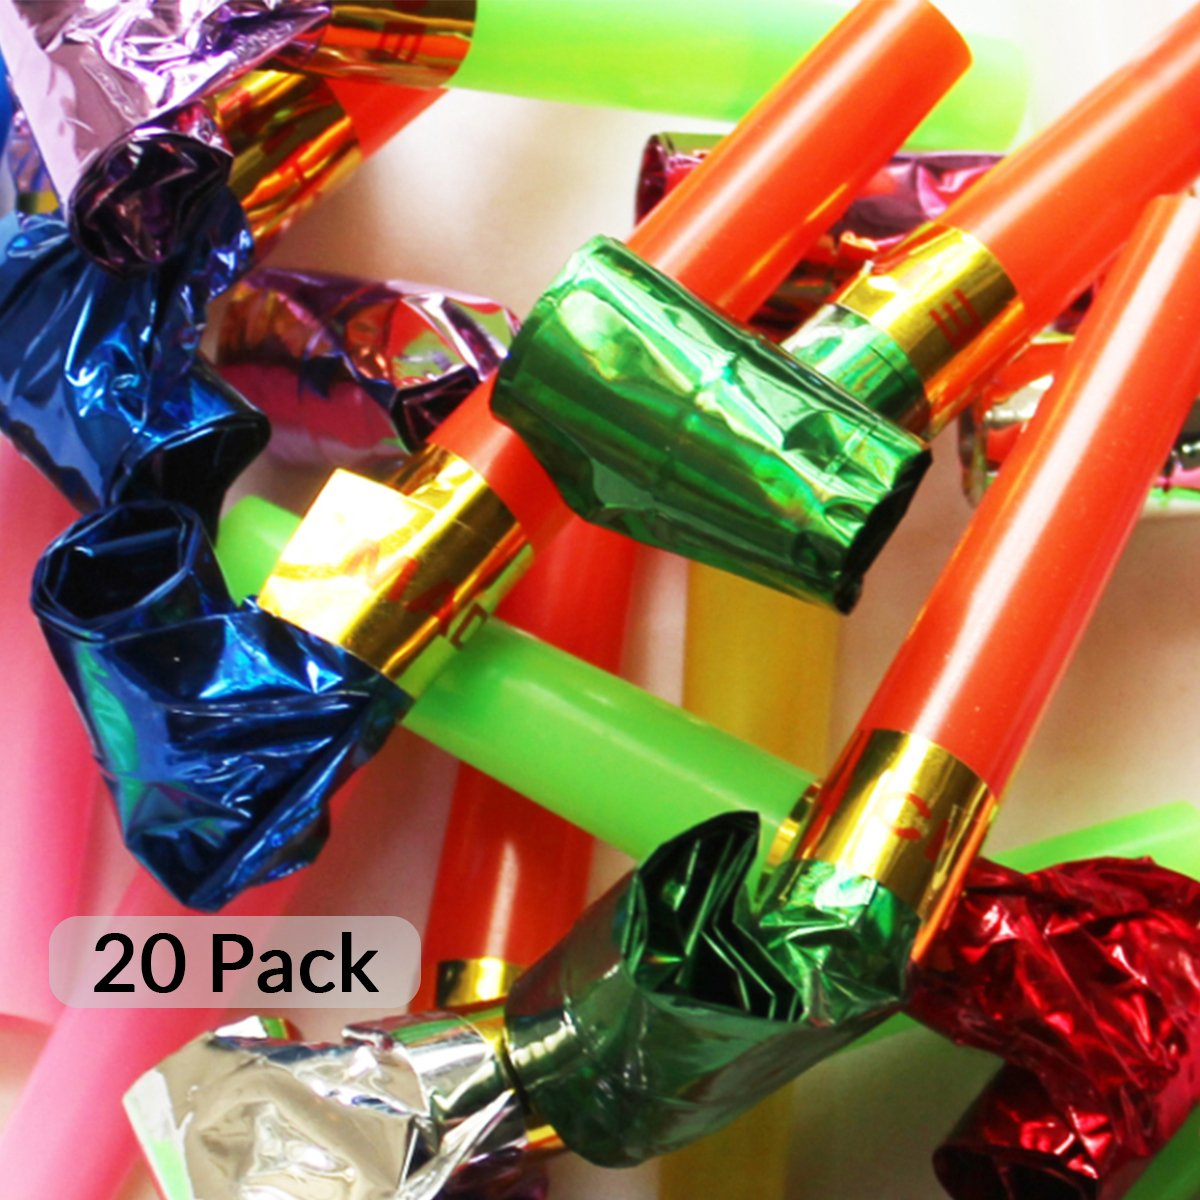 20pcs Christmas Party Blowers - Fun For Every Generation Schöne Memories (UK)